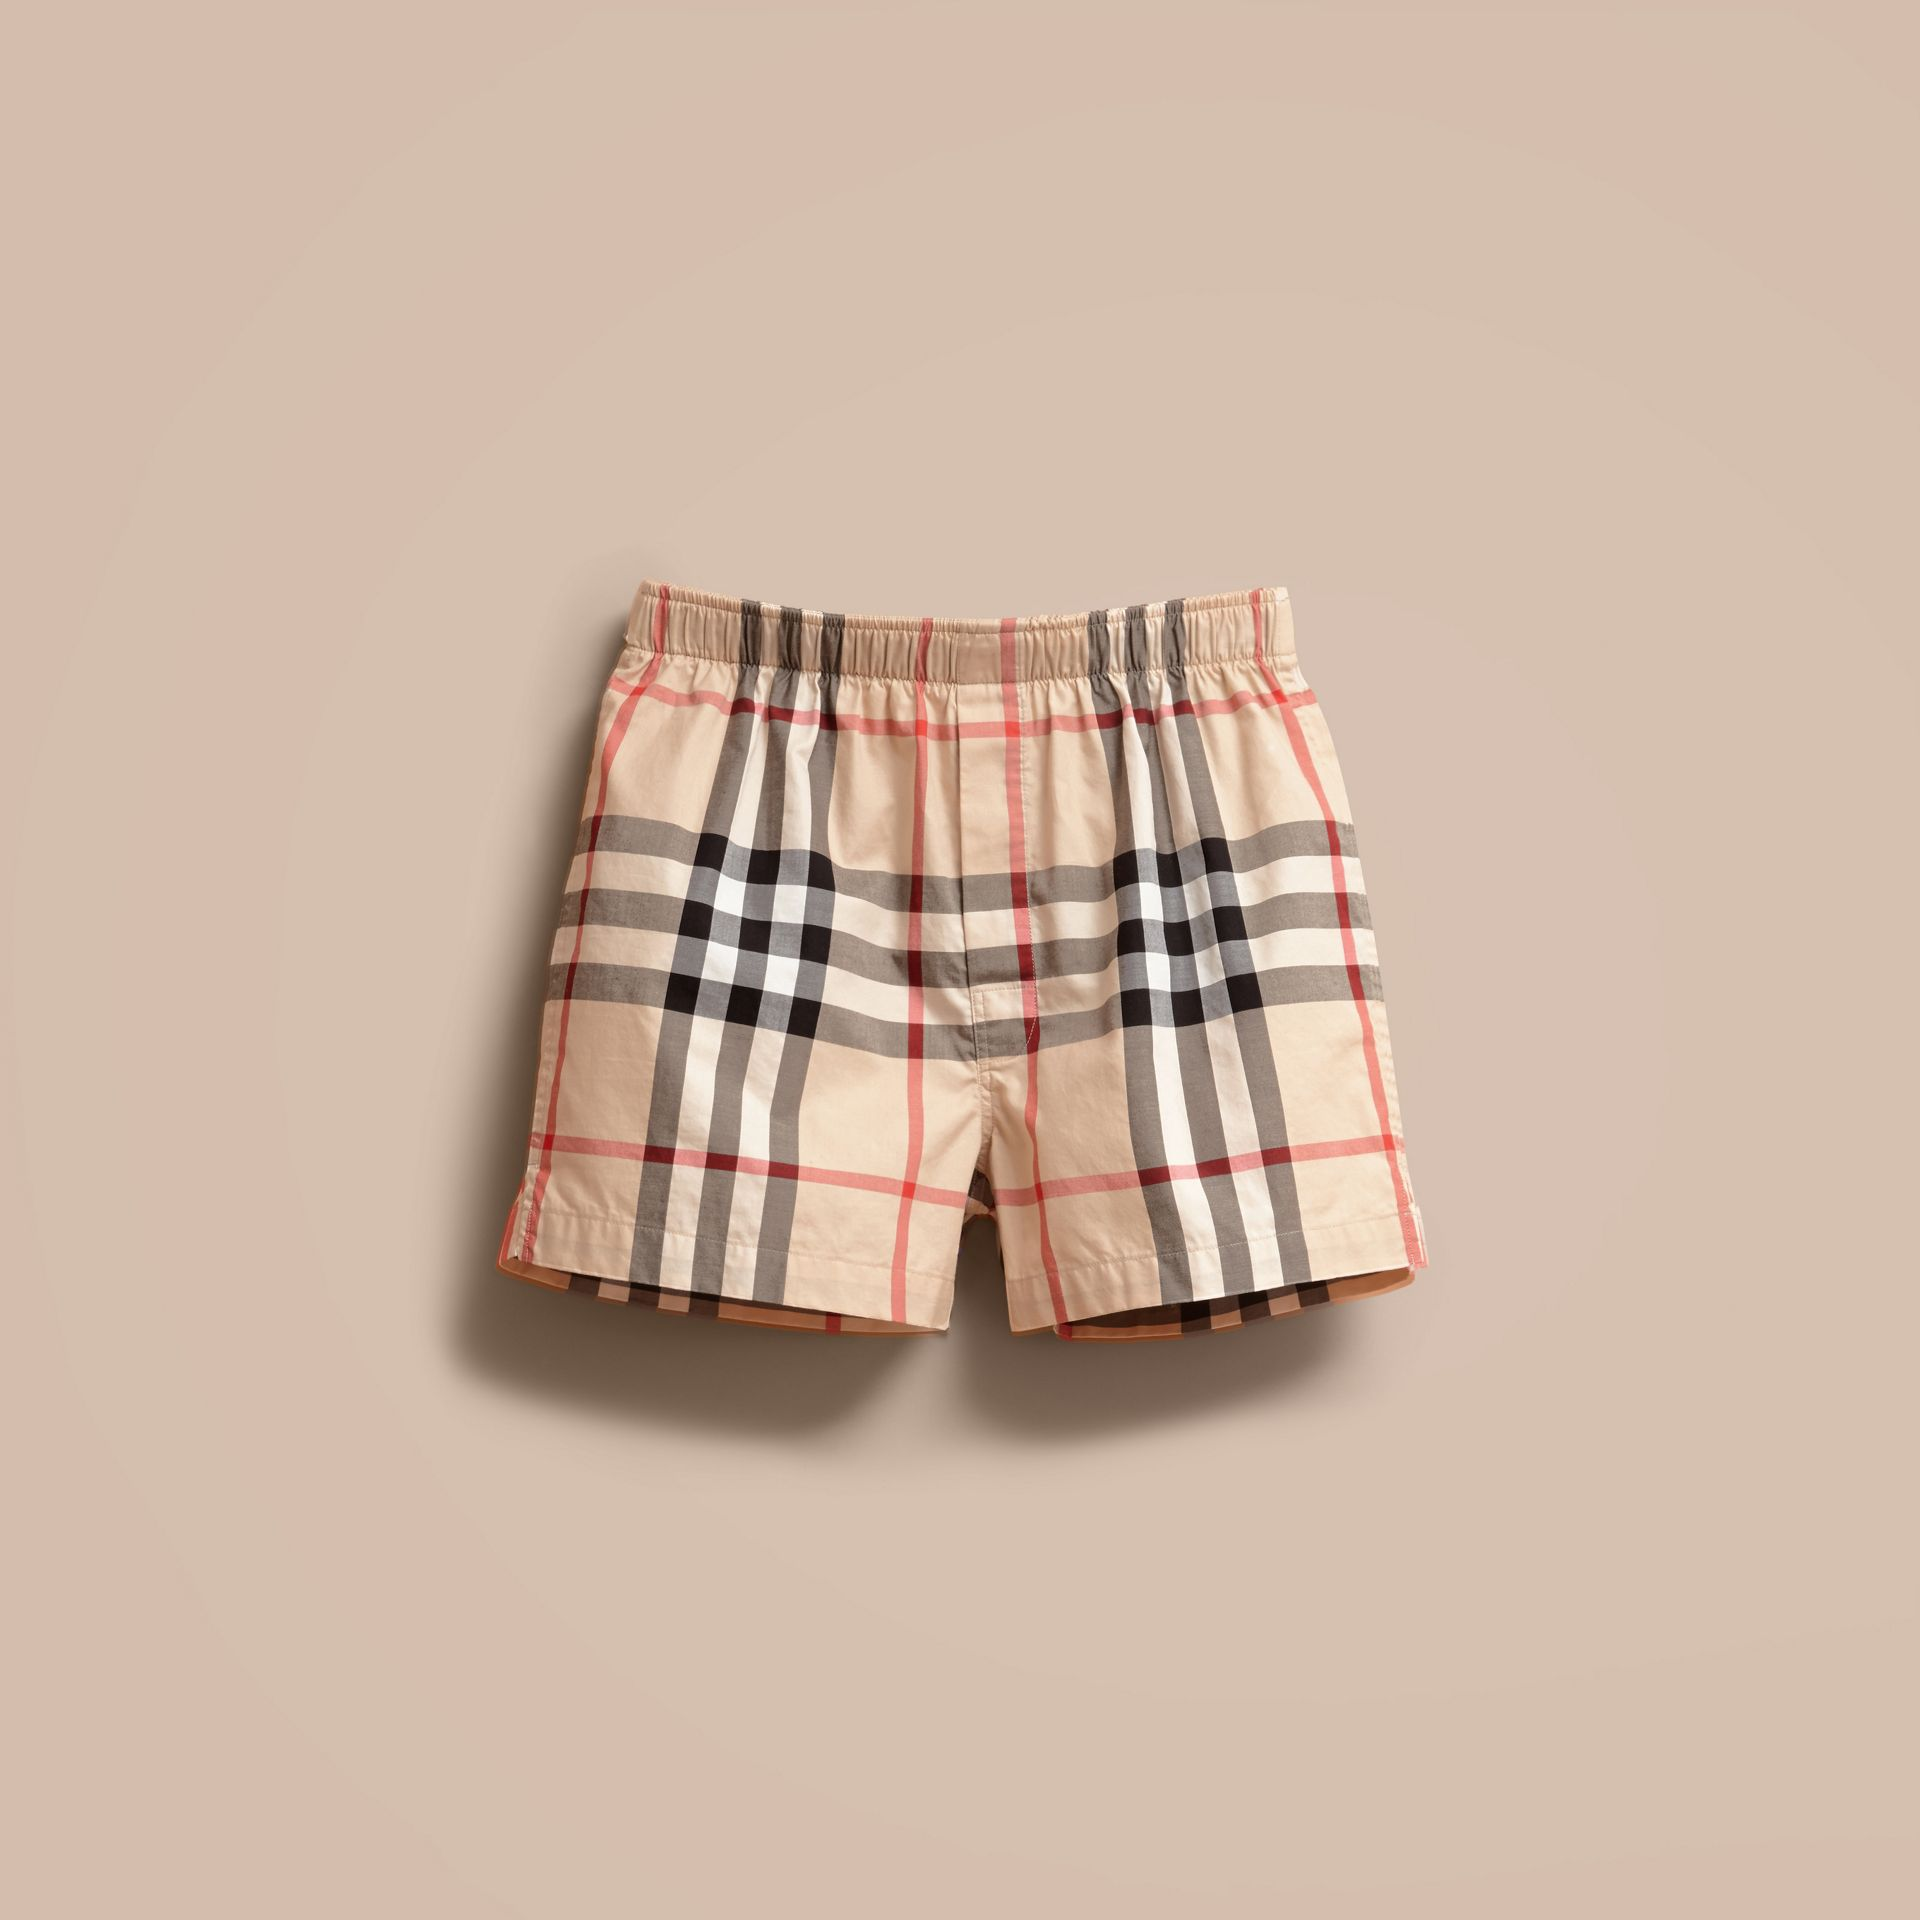 Check Twill Cotton Boxer Shorts in New Classic - Men | Burberry Canada - gallery image 4